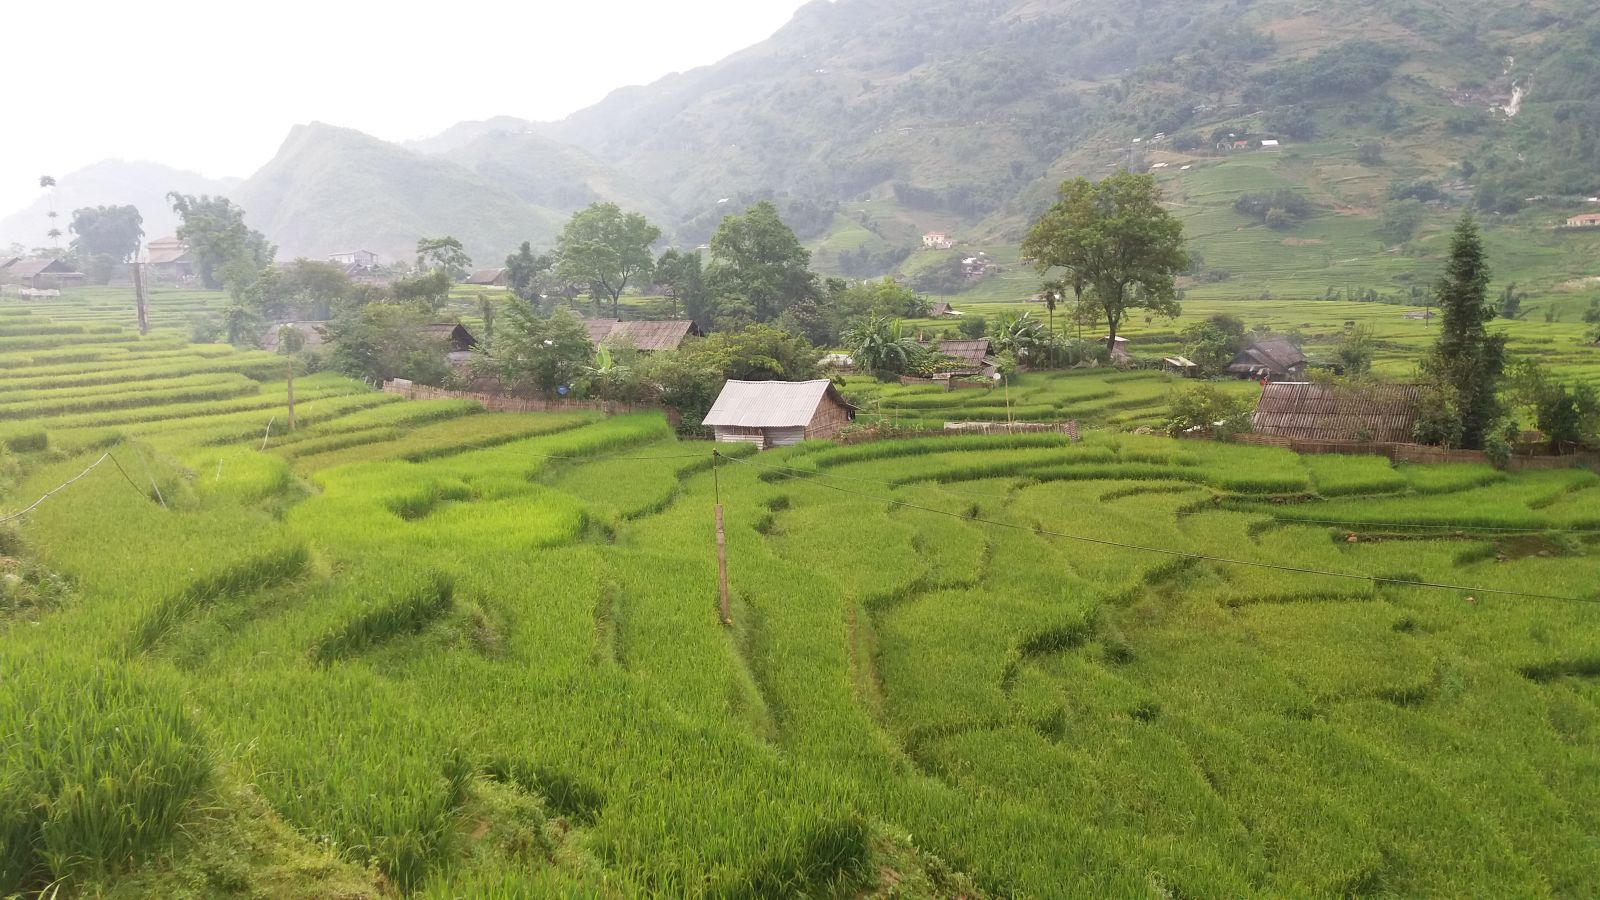 Sapa tour - rice terraces